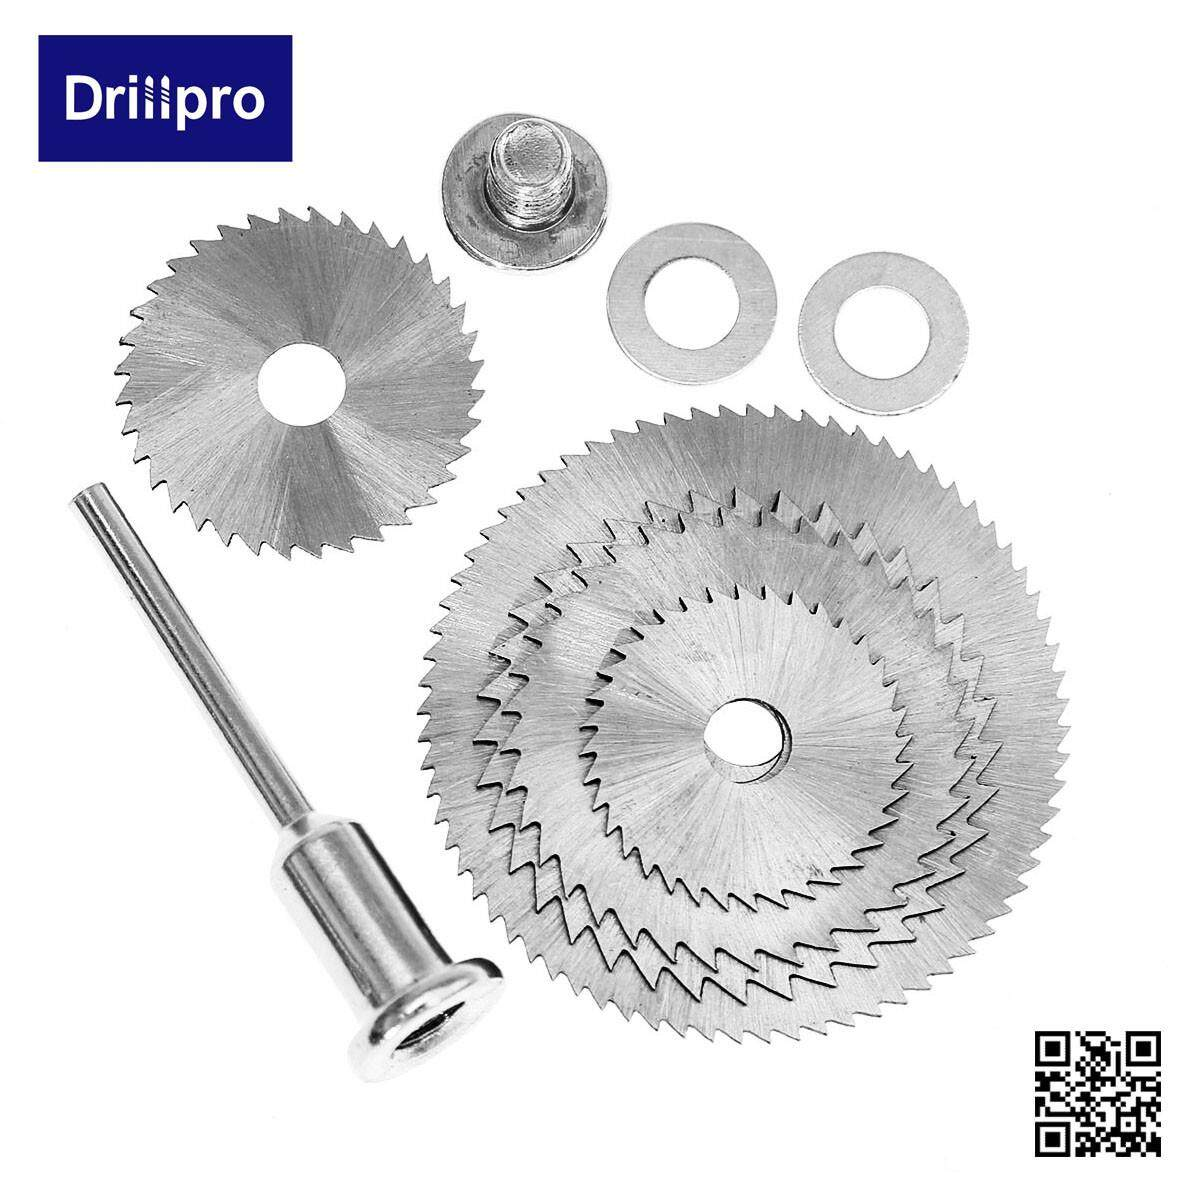 Drillpro SW-B1 6pc HSS Circular Saw Blade Set For Metal And Dremel Rotary Tools